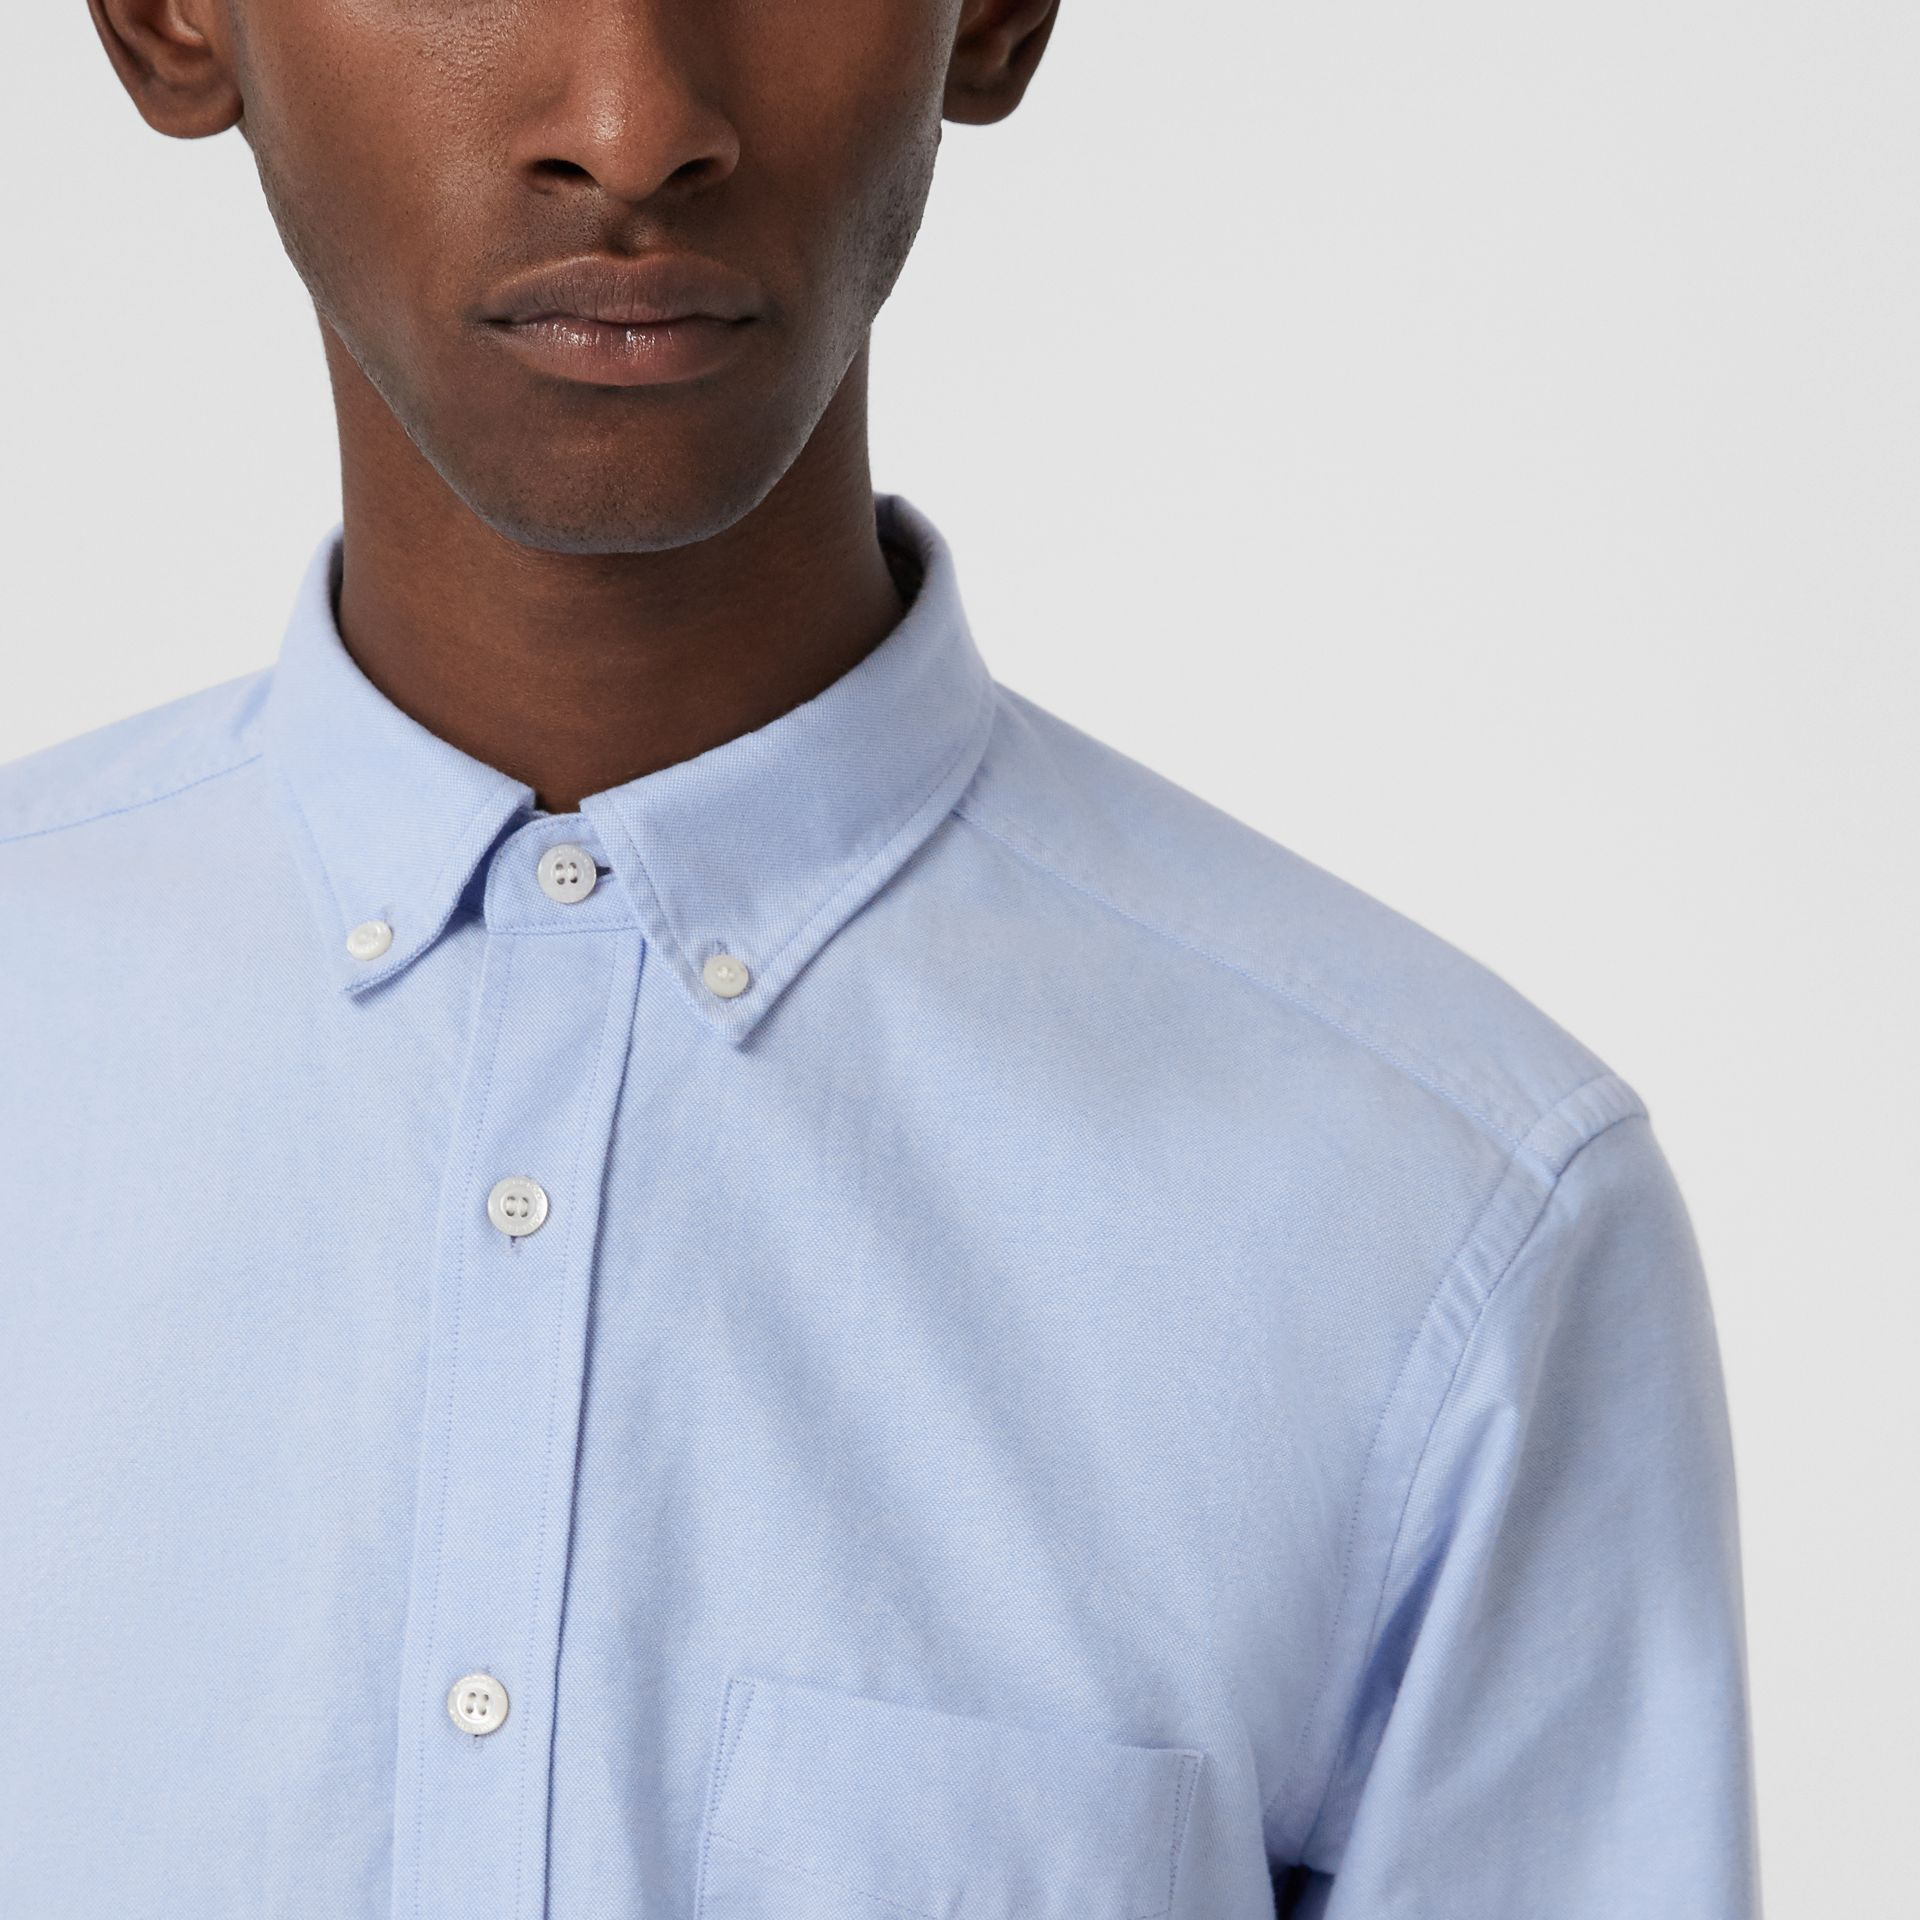 Check Cuff Cotton Oxford Shirt in Cornflower Blue - Men | Burberry United Kingdom - gallery image 1